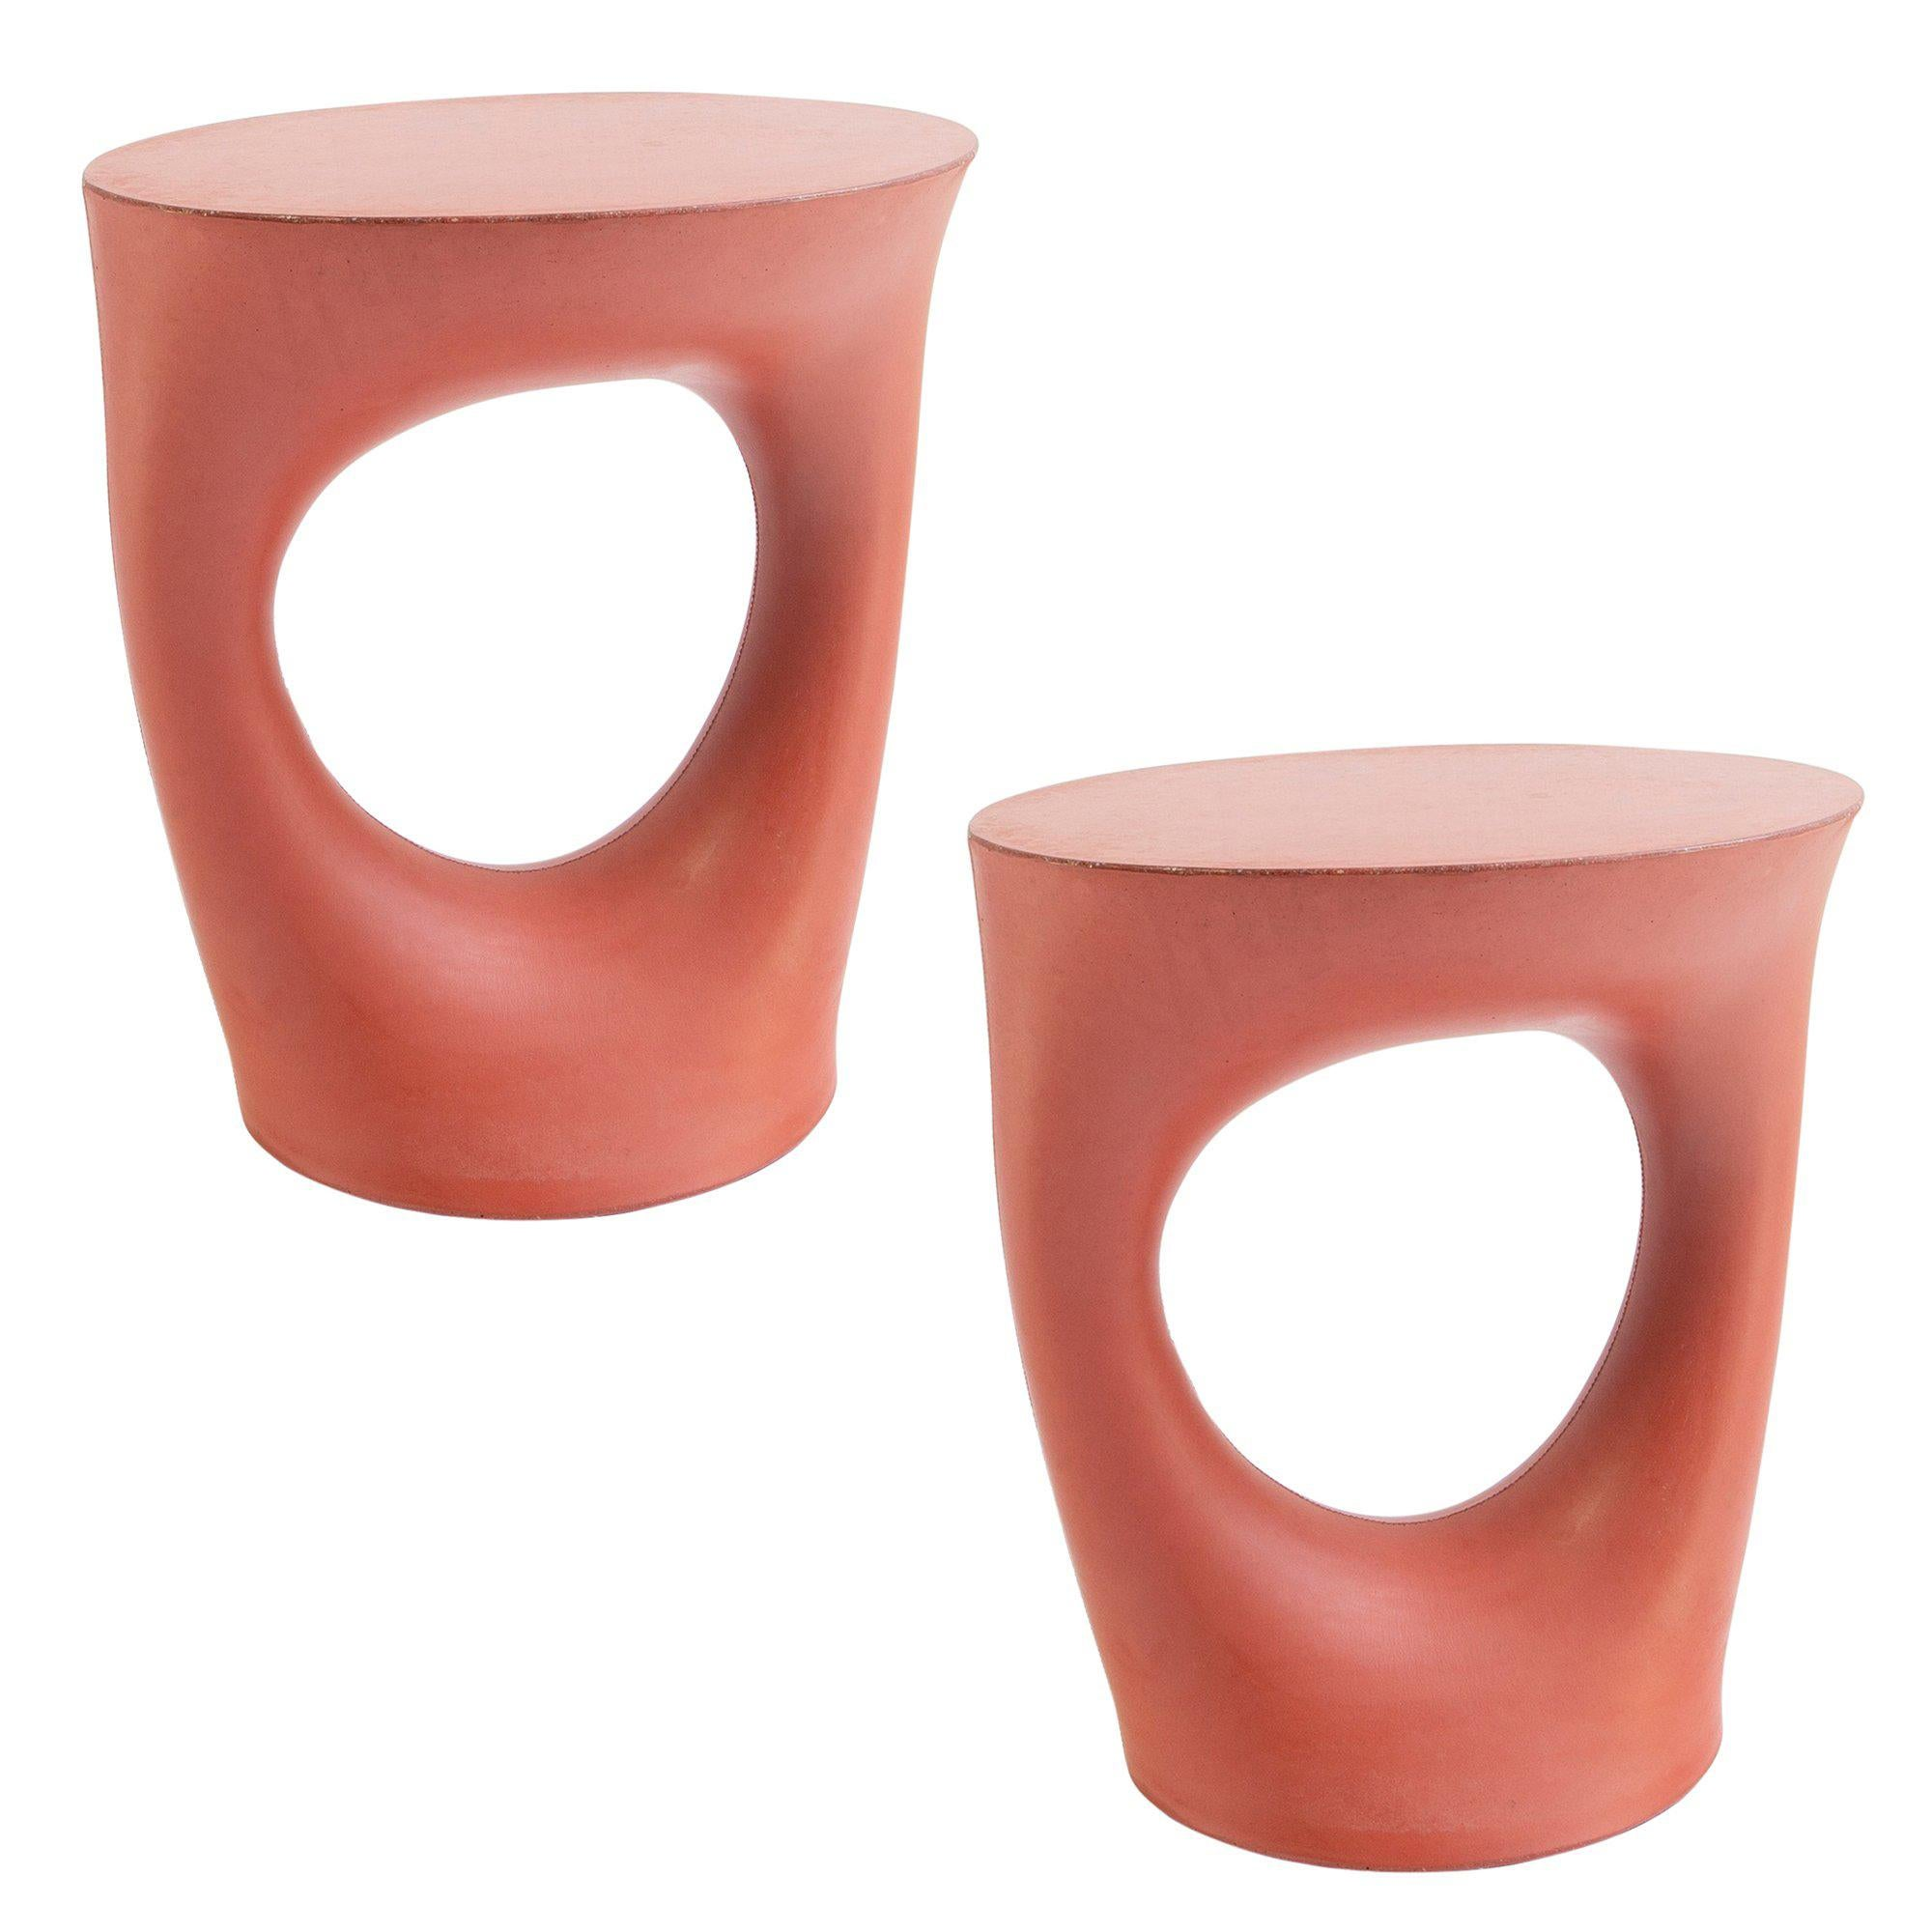 Pair of Red Short Kreten Side Tables from Souda, Made to Order